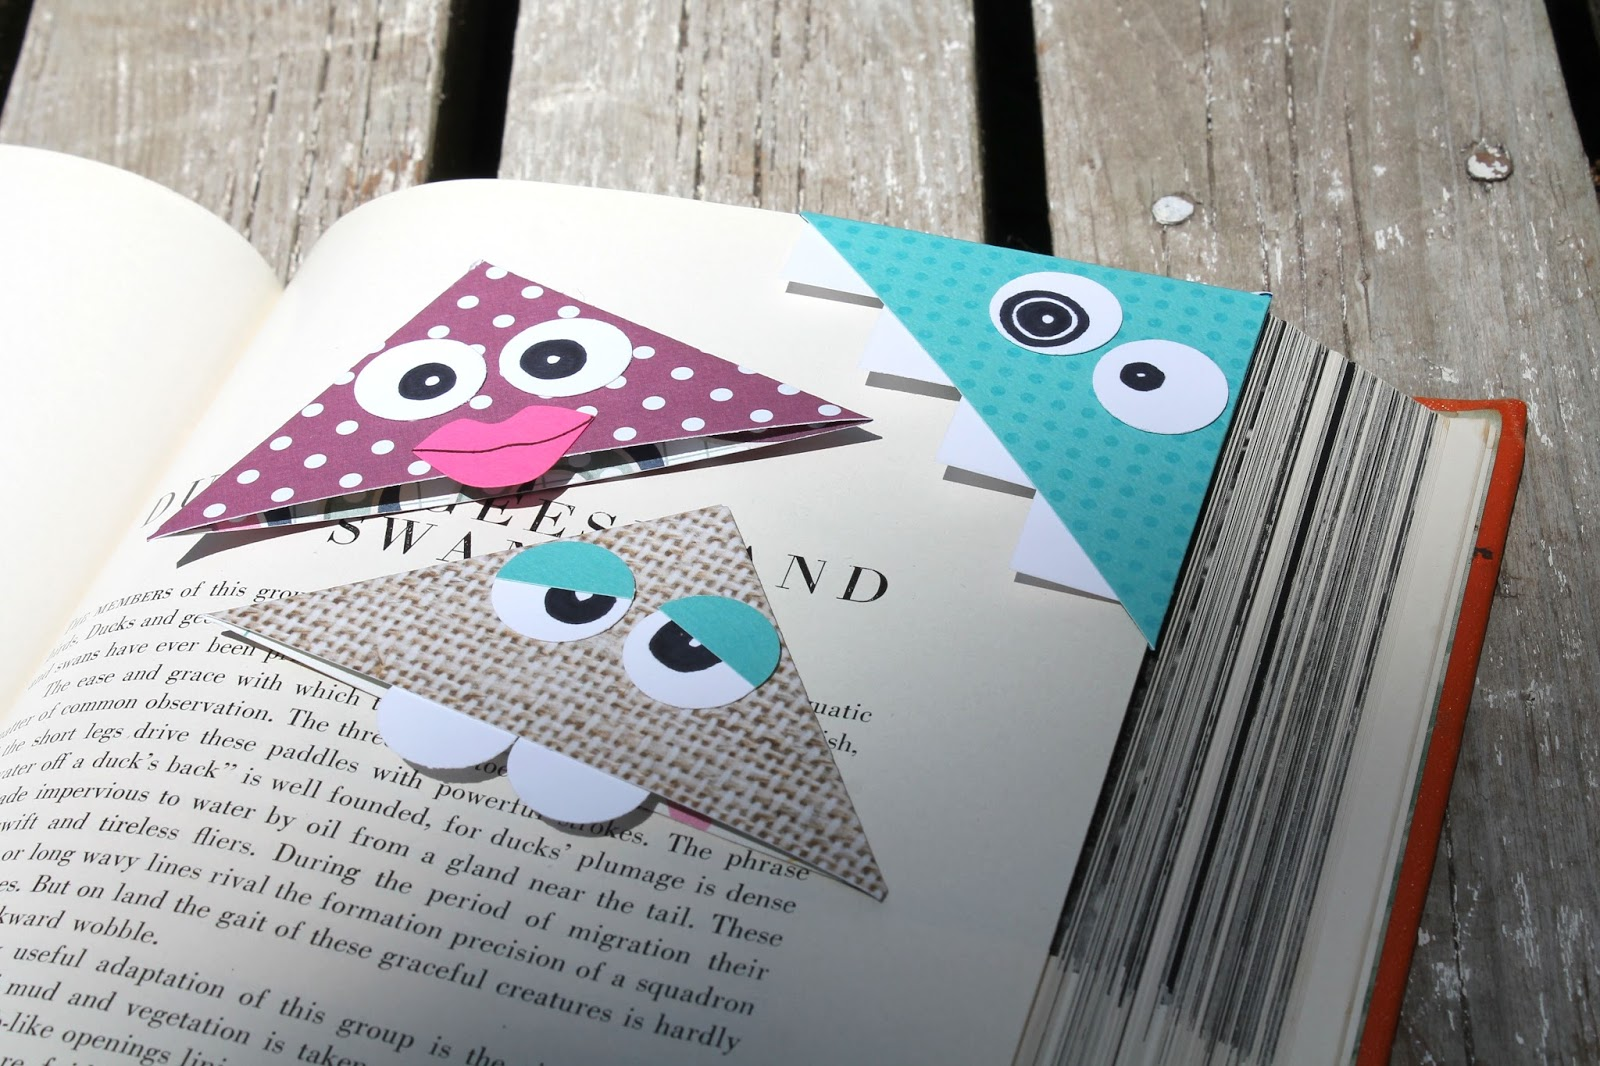 How to make scrapbook at home - These Corner Monster Bookmarks Are So Easy To Make And I Know You Already Have Everything You Need To Create Them At Home